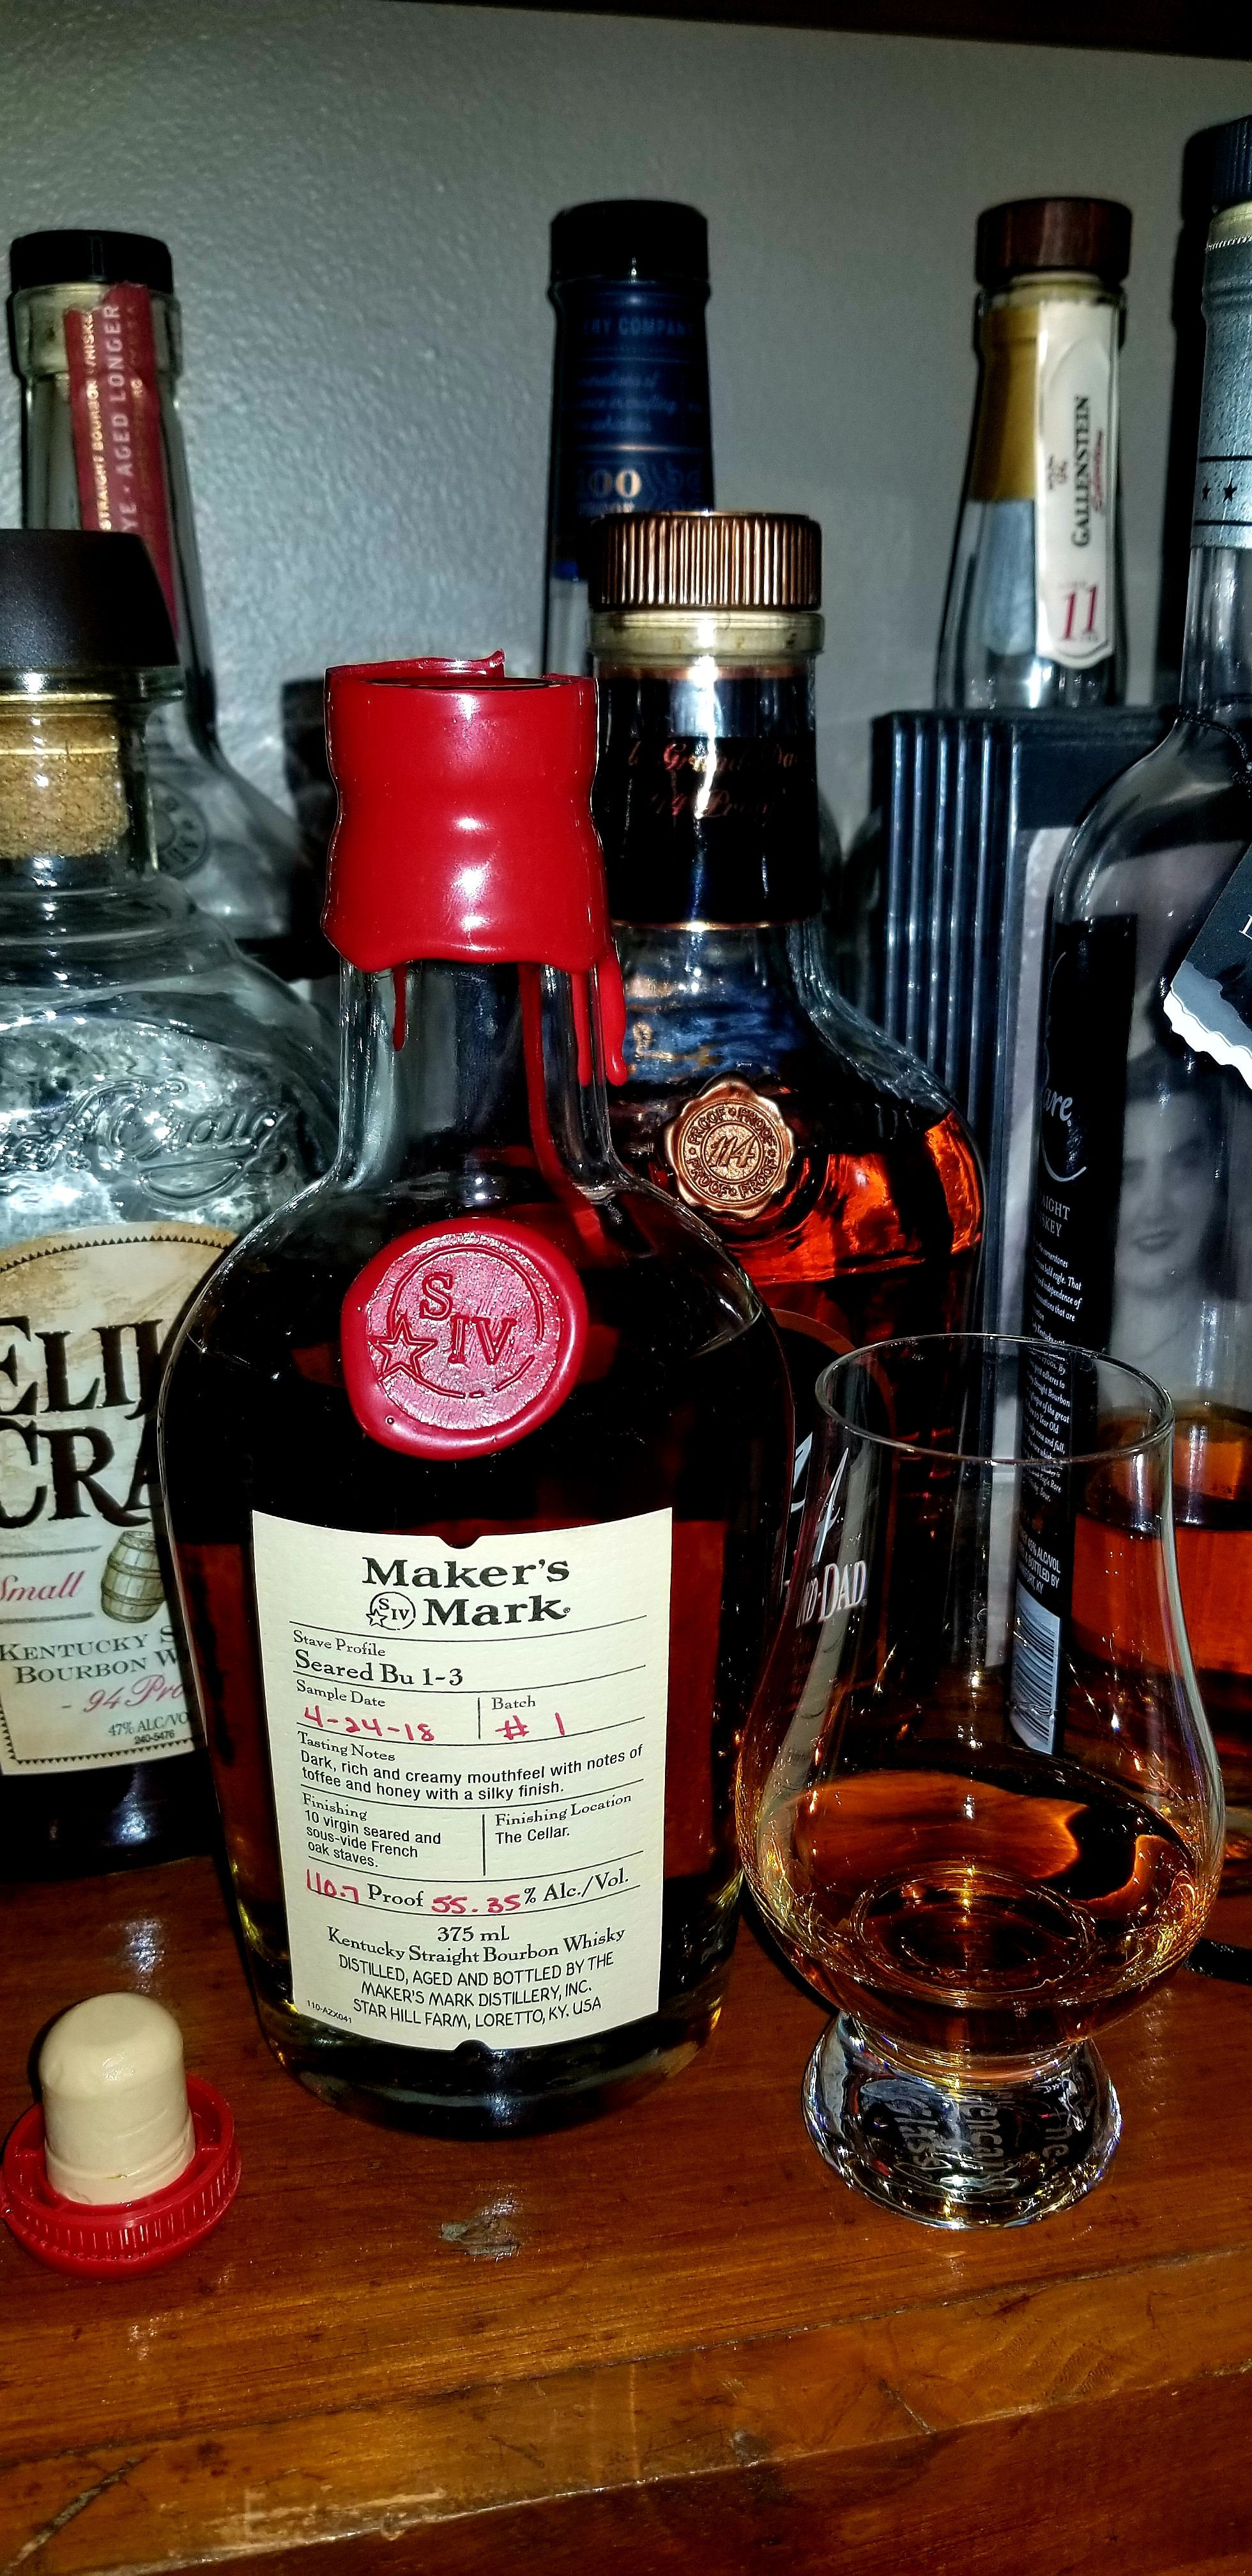 Review 93 Maker S Mark P S Seared Bu 1 3 Batch 1 Https Ift Tt 2yhn0fc Fine Wine And Spirits Makers Mark Kentucky Bourbon Whisky